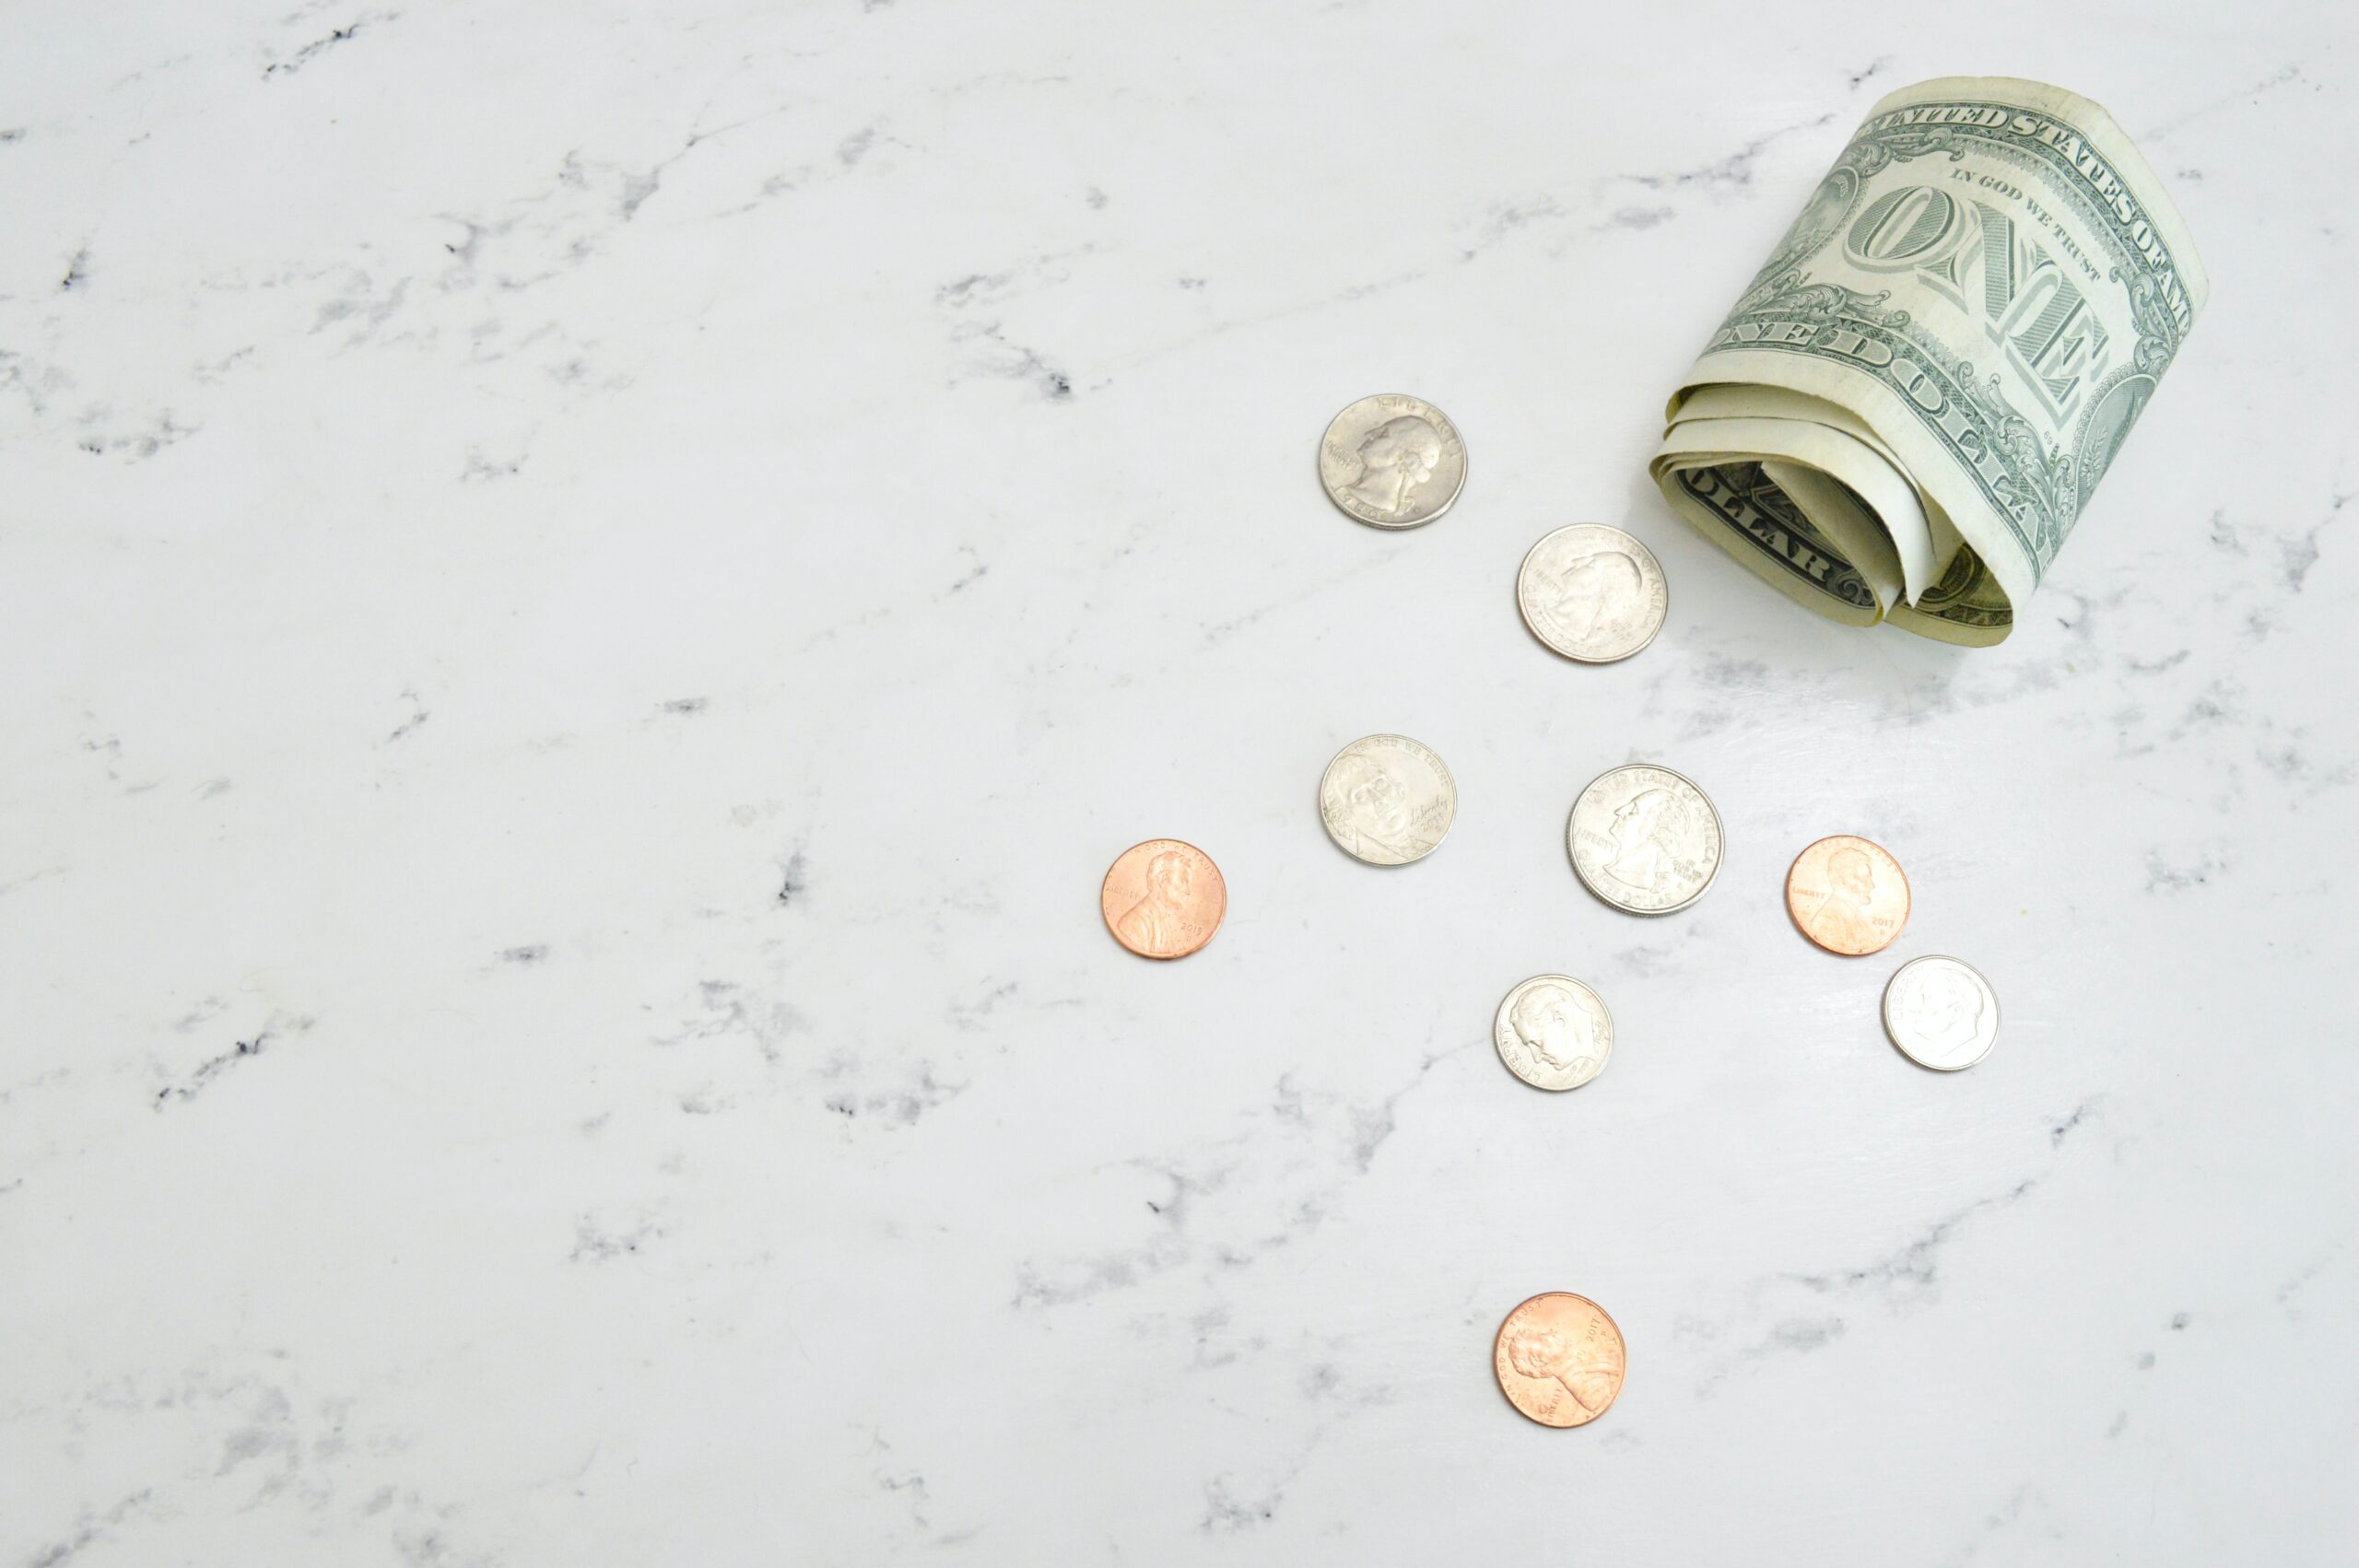 a dollar and change